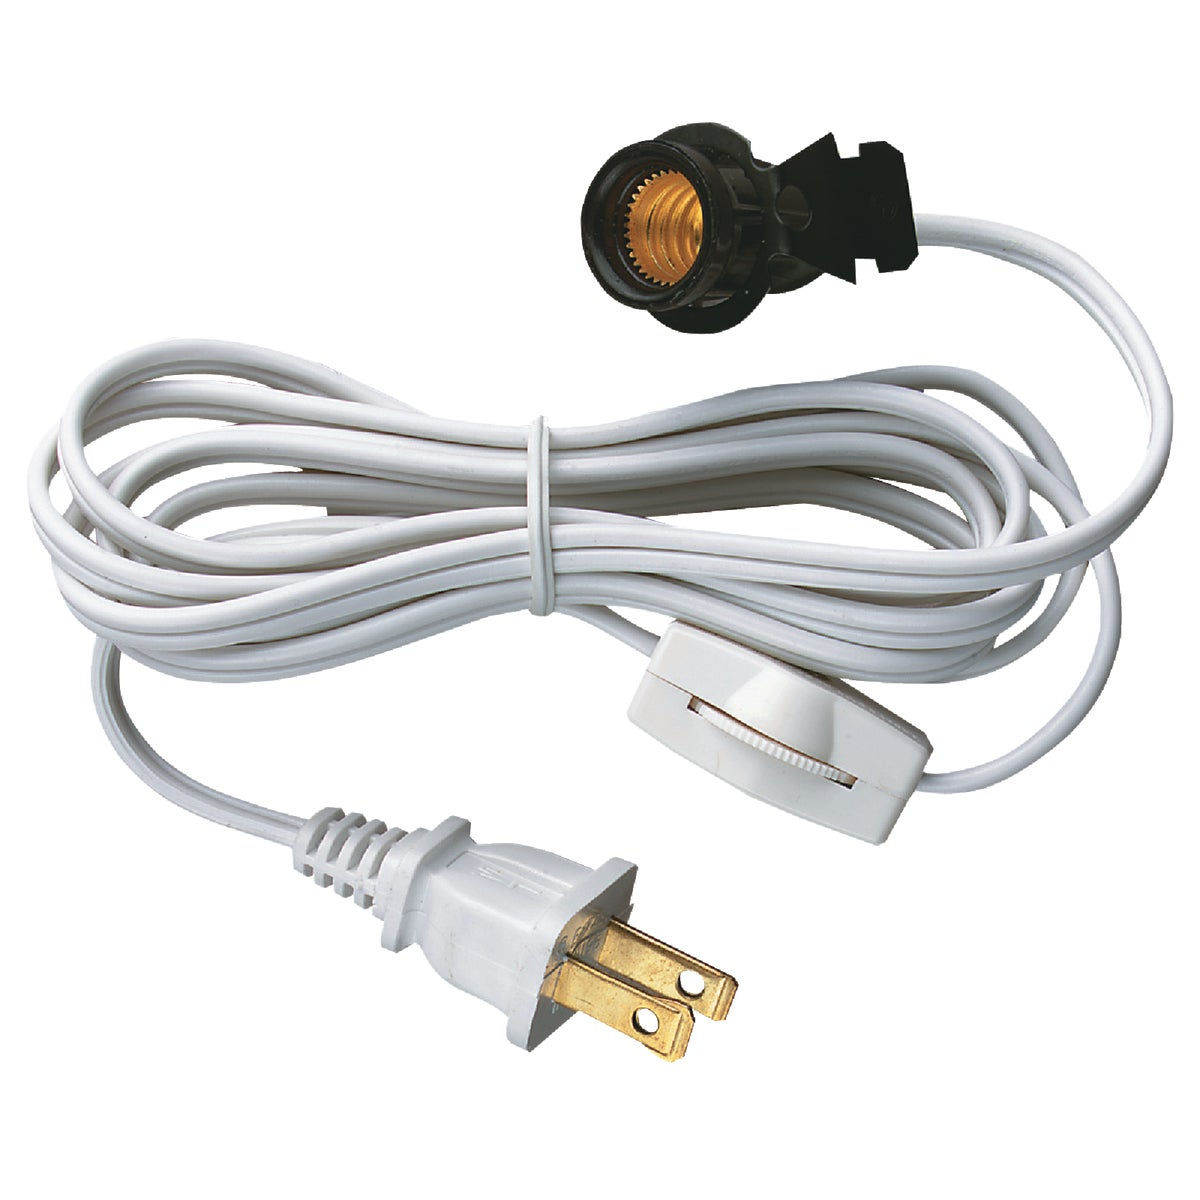 WHT SWITCH/CORD - 70108 by Westinghouse Lightng